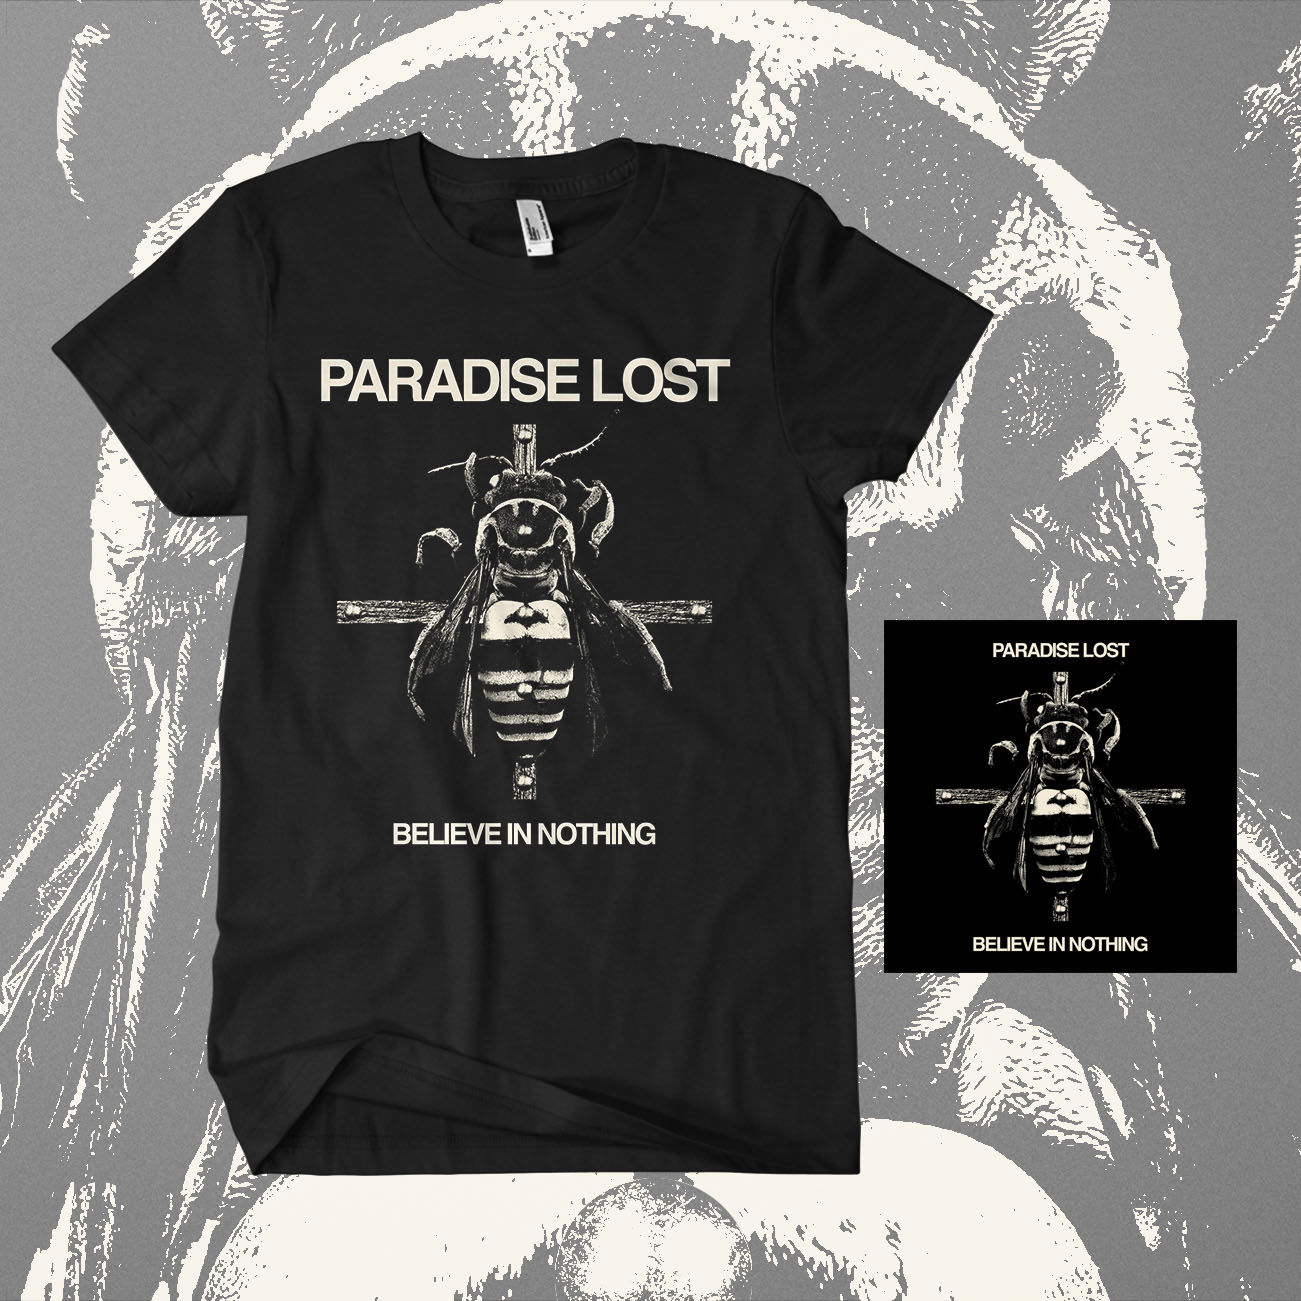 Paradise Lost - 'Believe in Nothing' Digipack & T-Shirt Bundle - Paradise Lost